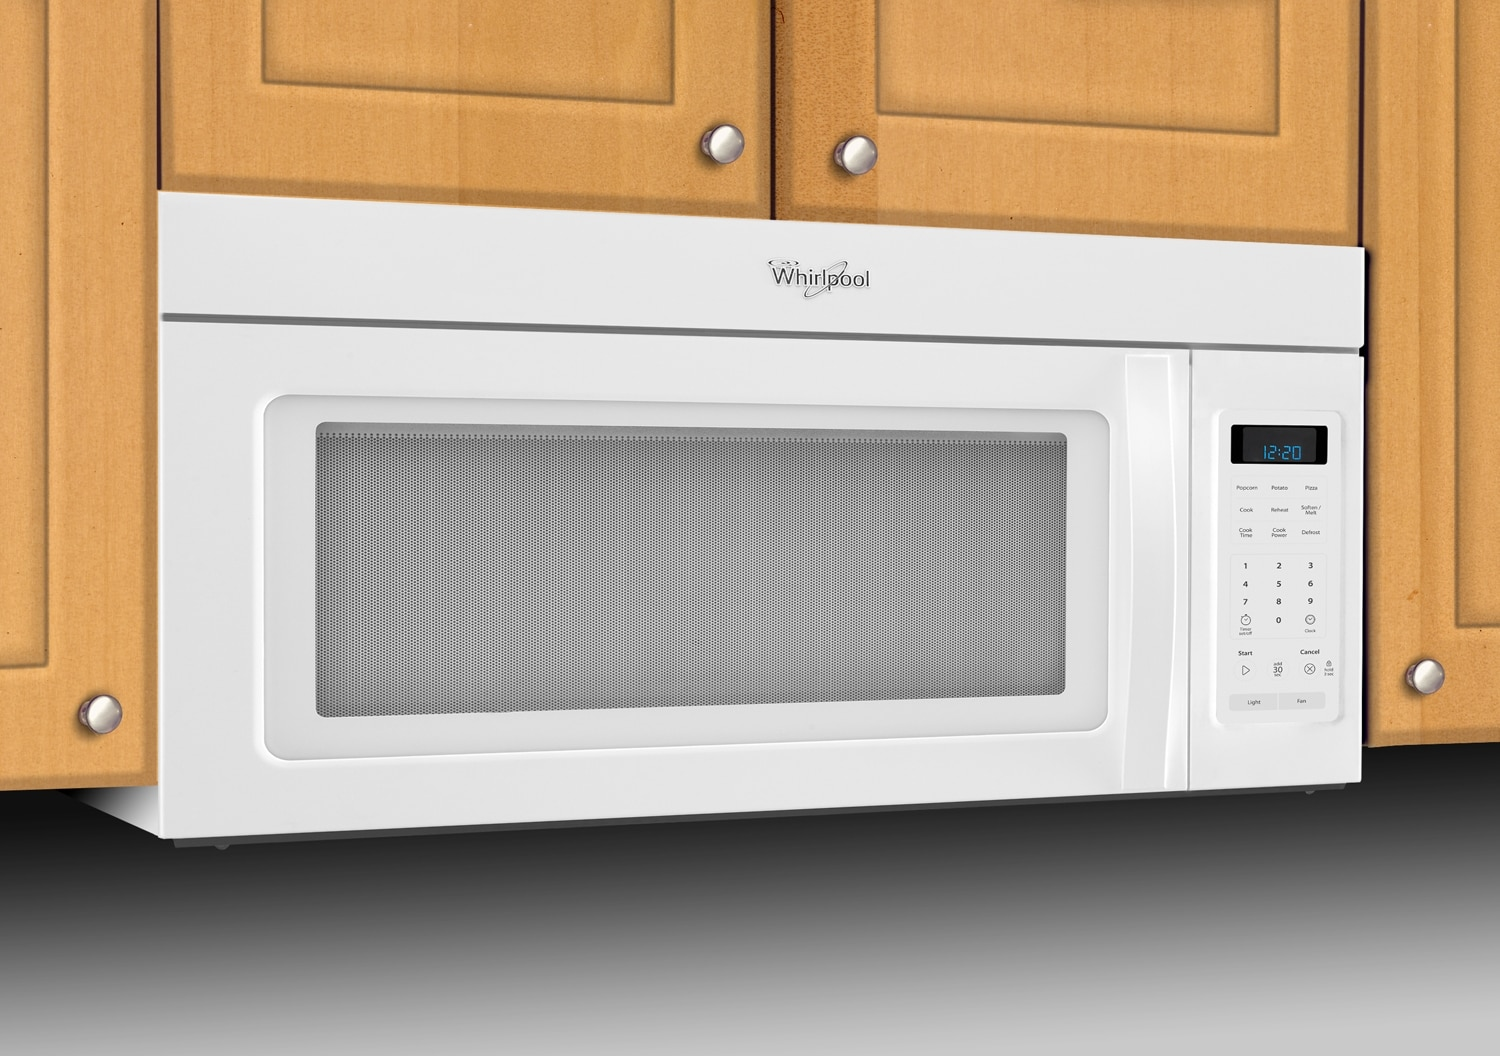 whirlpool over the range microwave dimensions checkwindows. Black Bedroom Furniture Sets. Home Design Ideas